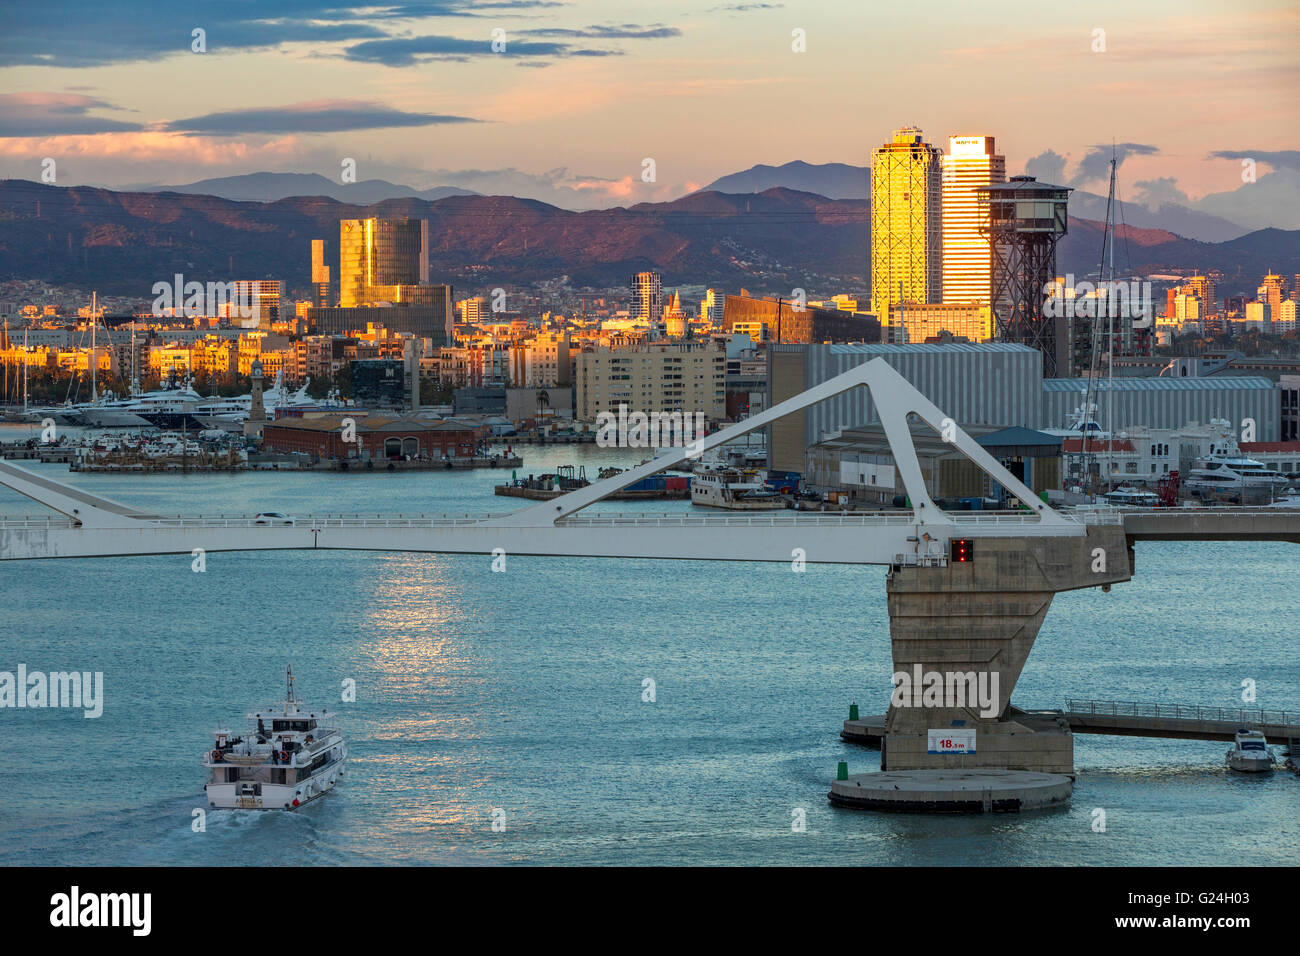 Boat entering the port of Barcelona, Spain - Stock Image